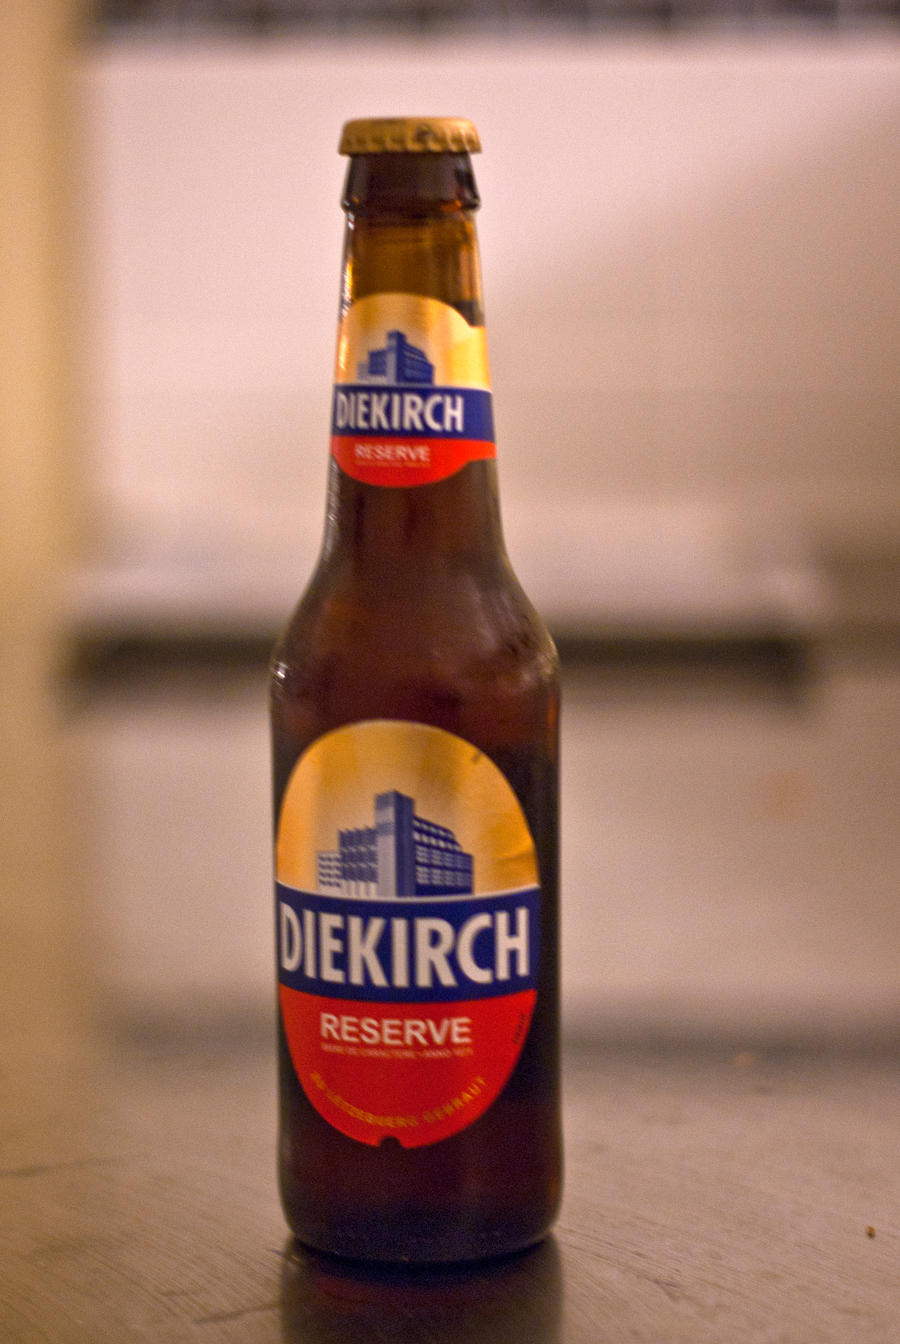 diekirch chat 100% free diekirch (luxembourg)  just add your profile, search for other members like you seeking to date, flirt, chat, find romance and have fun.